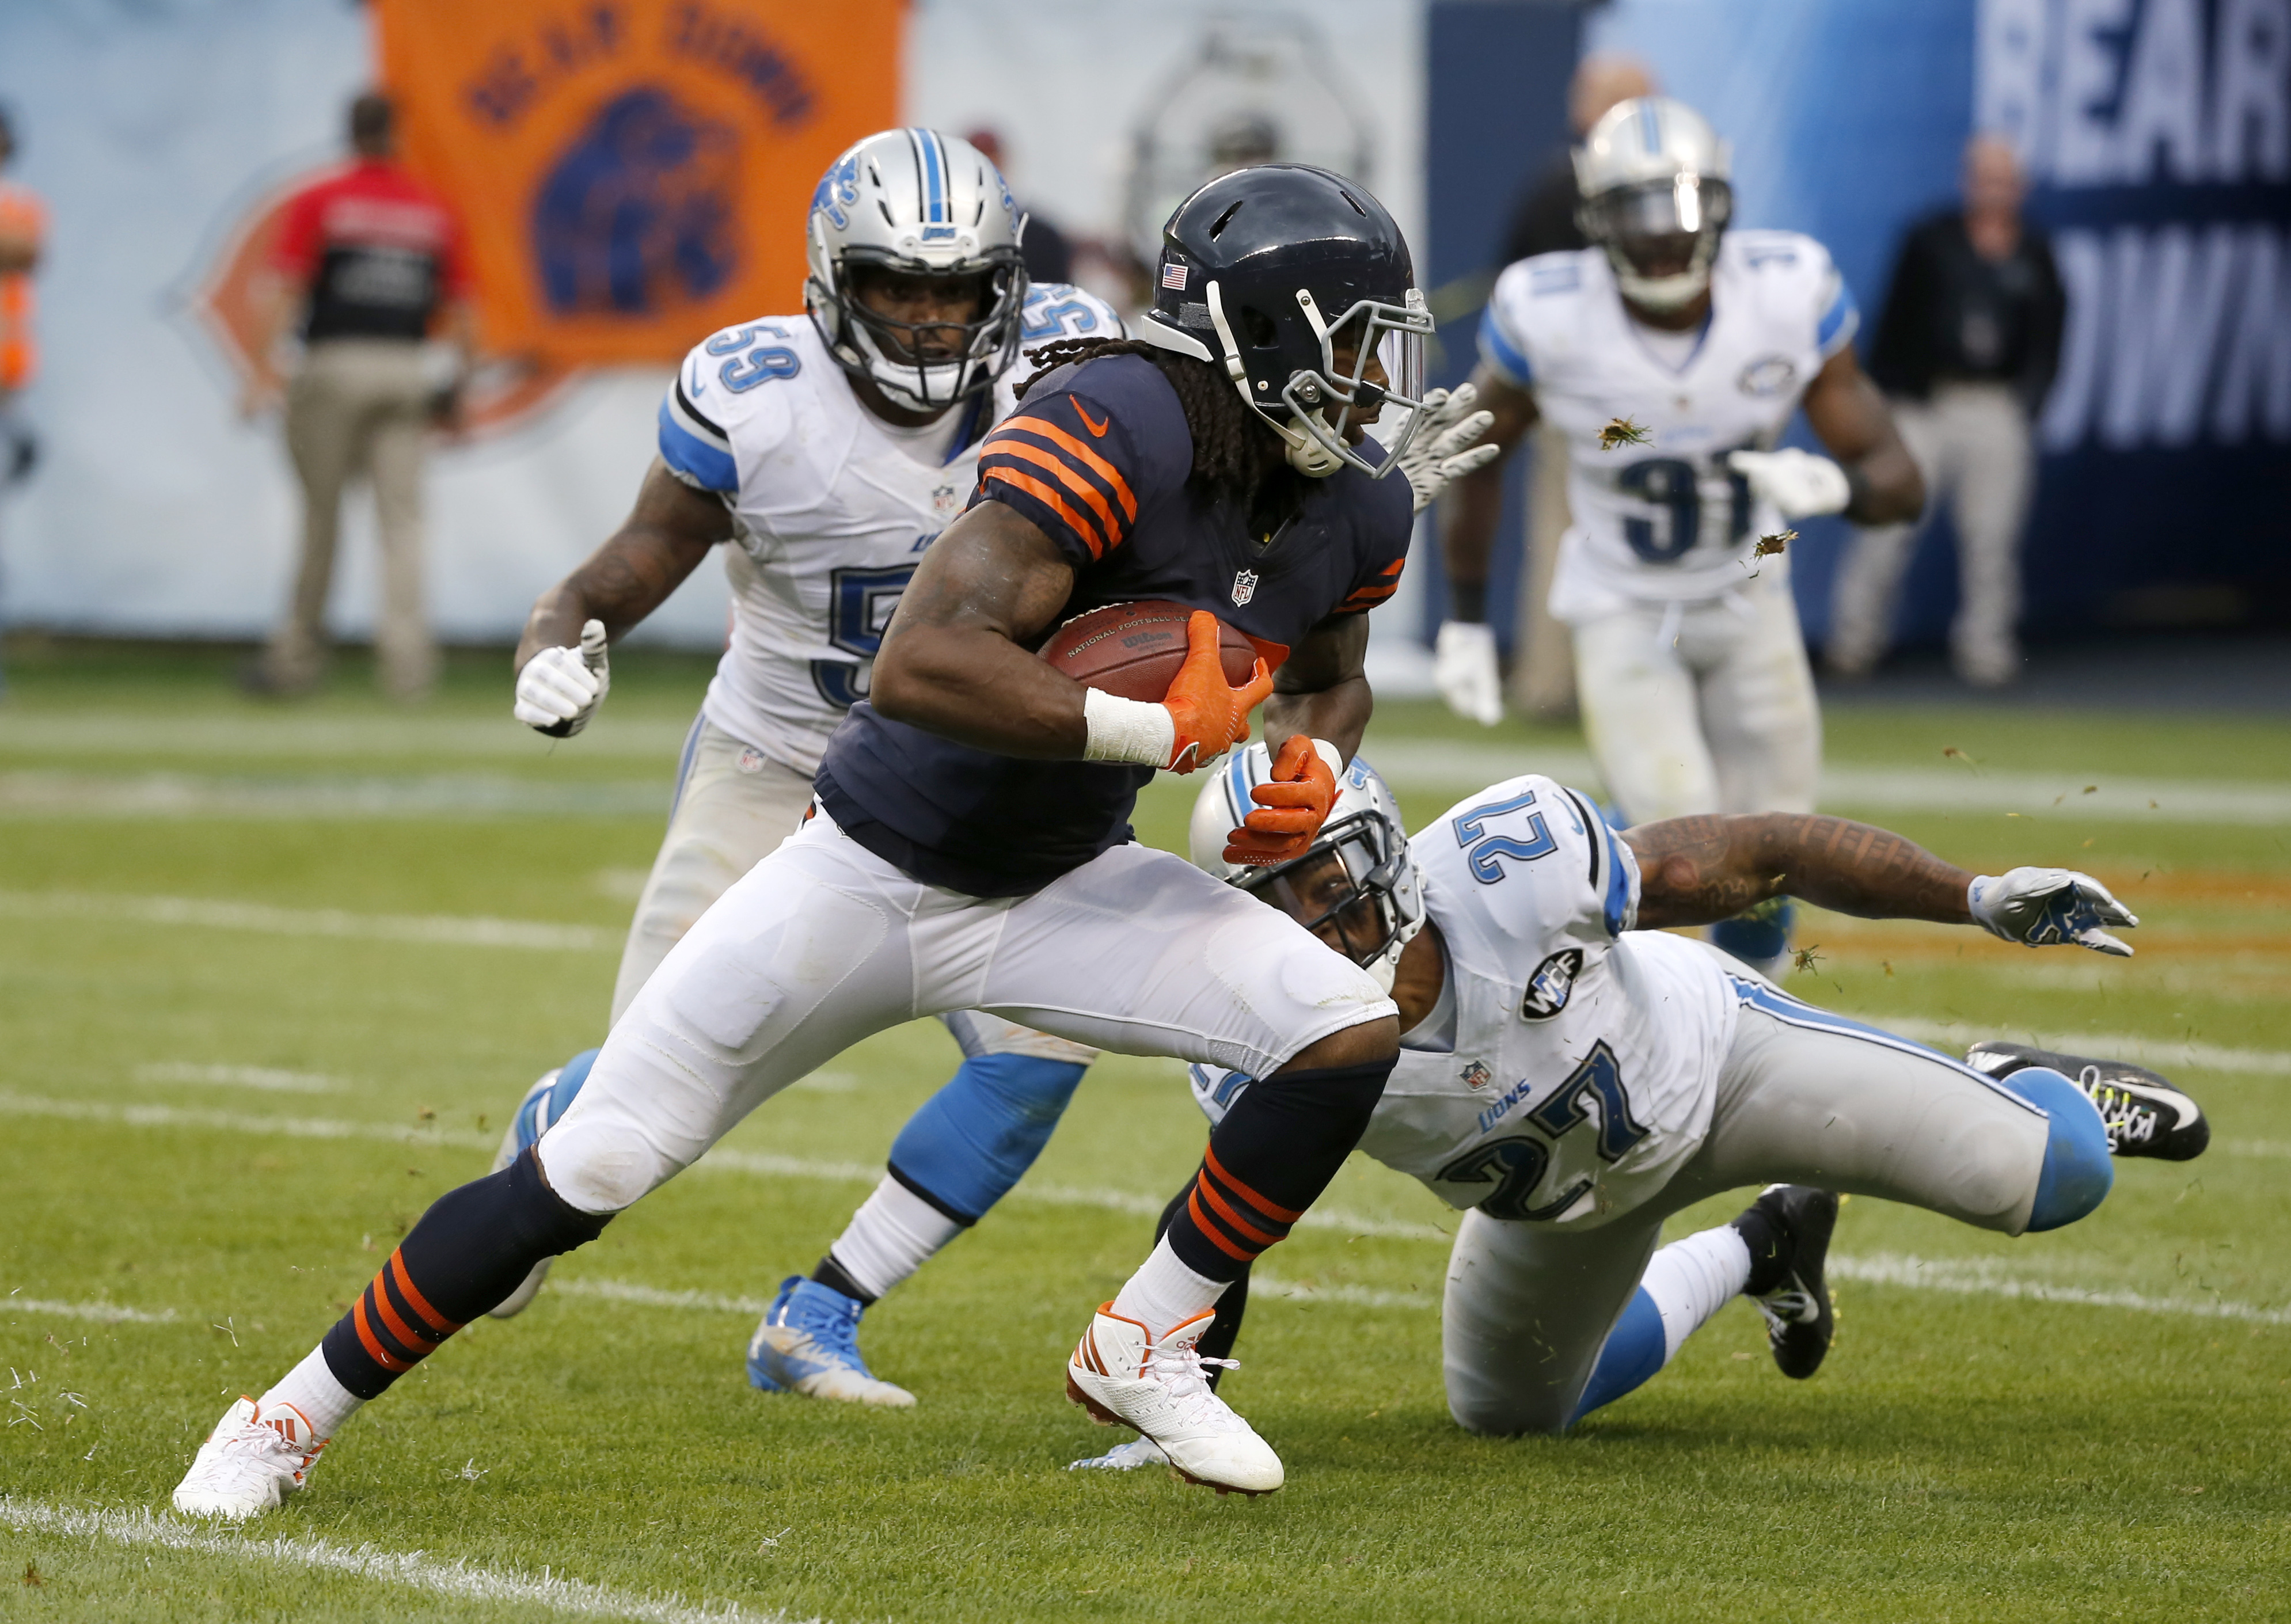 Chicago Bears wide receiver Kevin White (13) runs after receiving a pass against Detroit Lions free safety Glover Quin (27) during the second half of an NFL football game, Sunday, Oct. 2, 2016, in Chicago. (AP Photo/Charles Rex Arbogast)